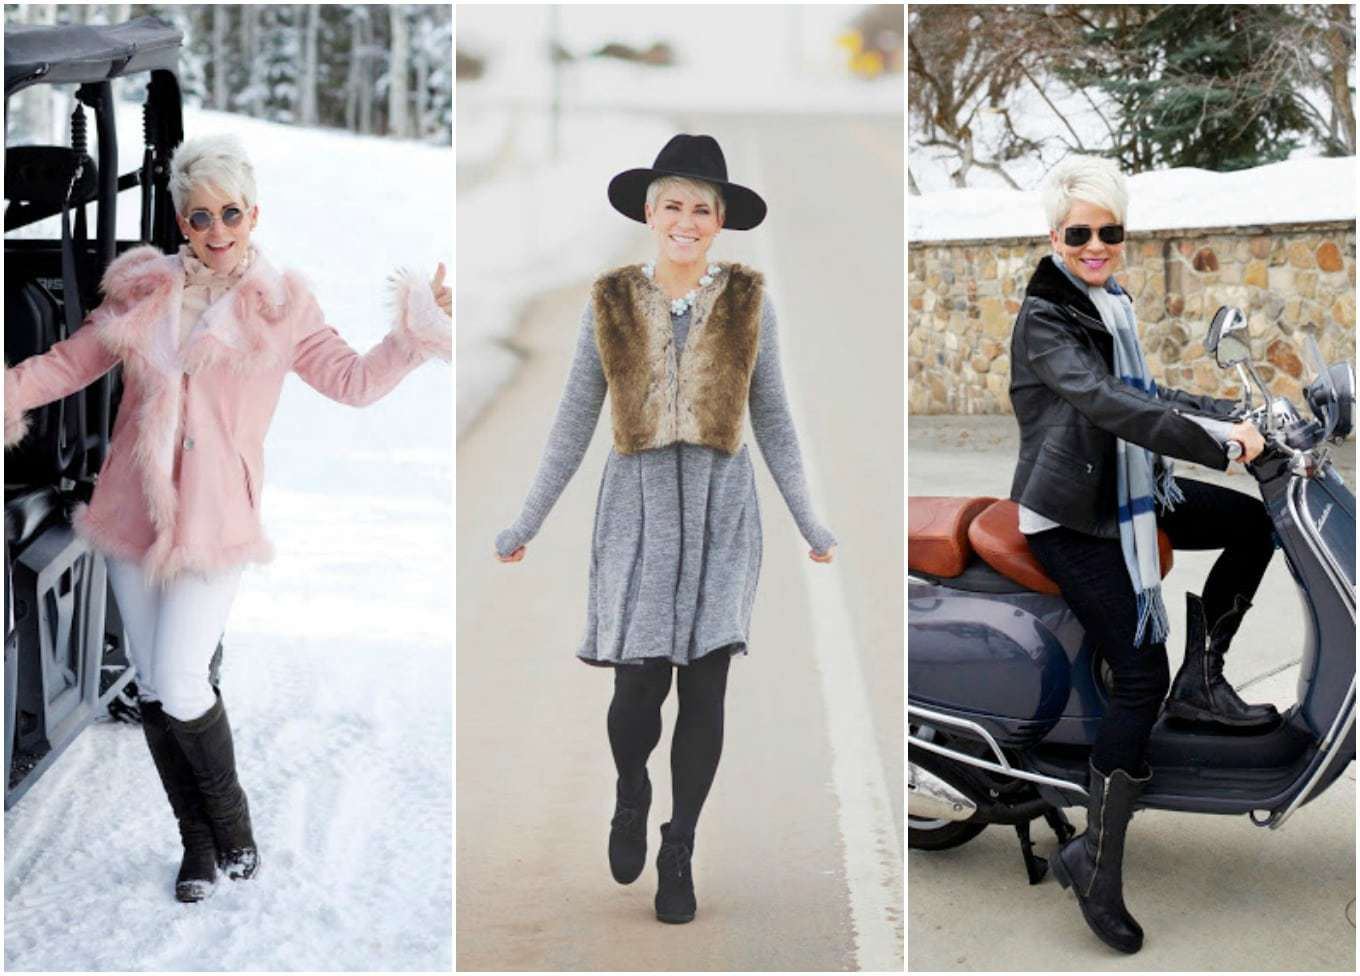 Best Over 40 Fashion Blogs - Chic Over 50 - featured by popular Washington DC over 40 fashion blogger, Wardrobe Oxygen